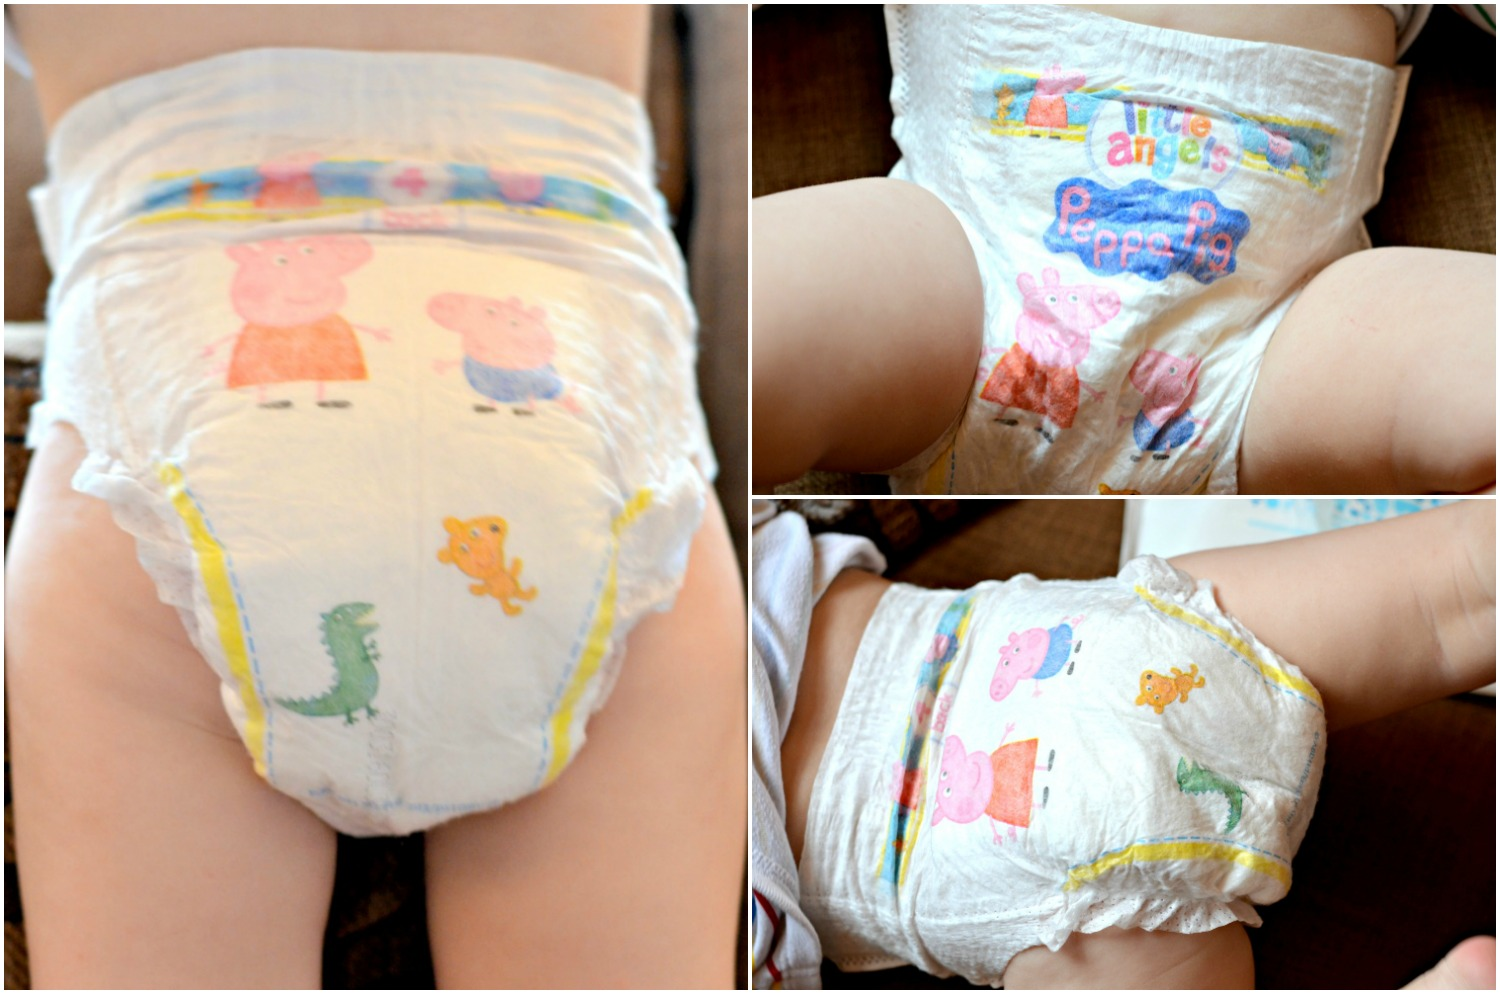 peppa pig first pants asda